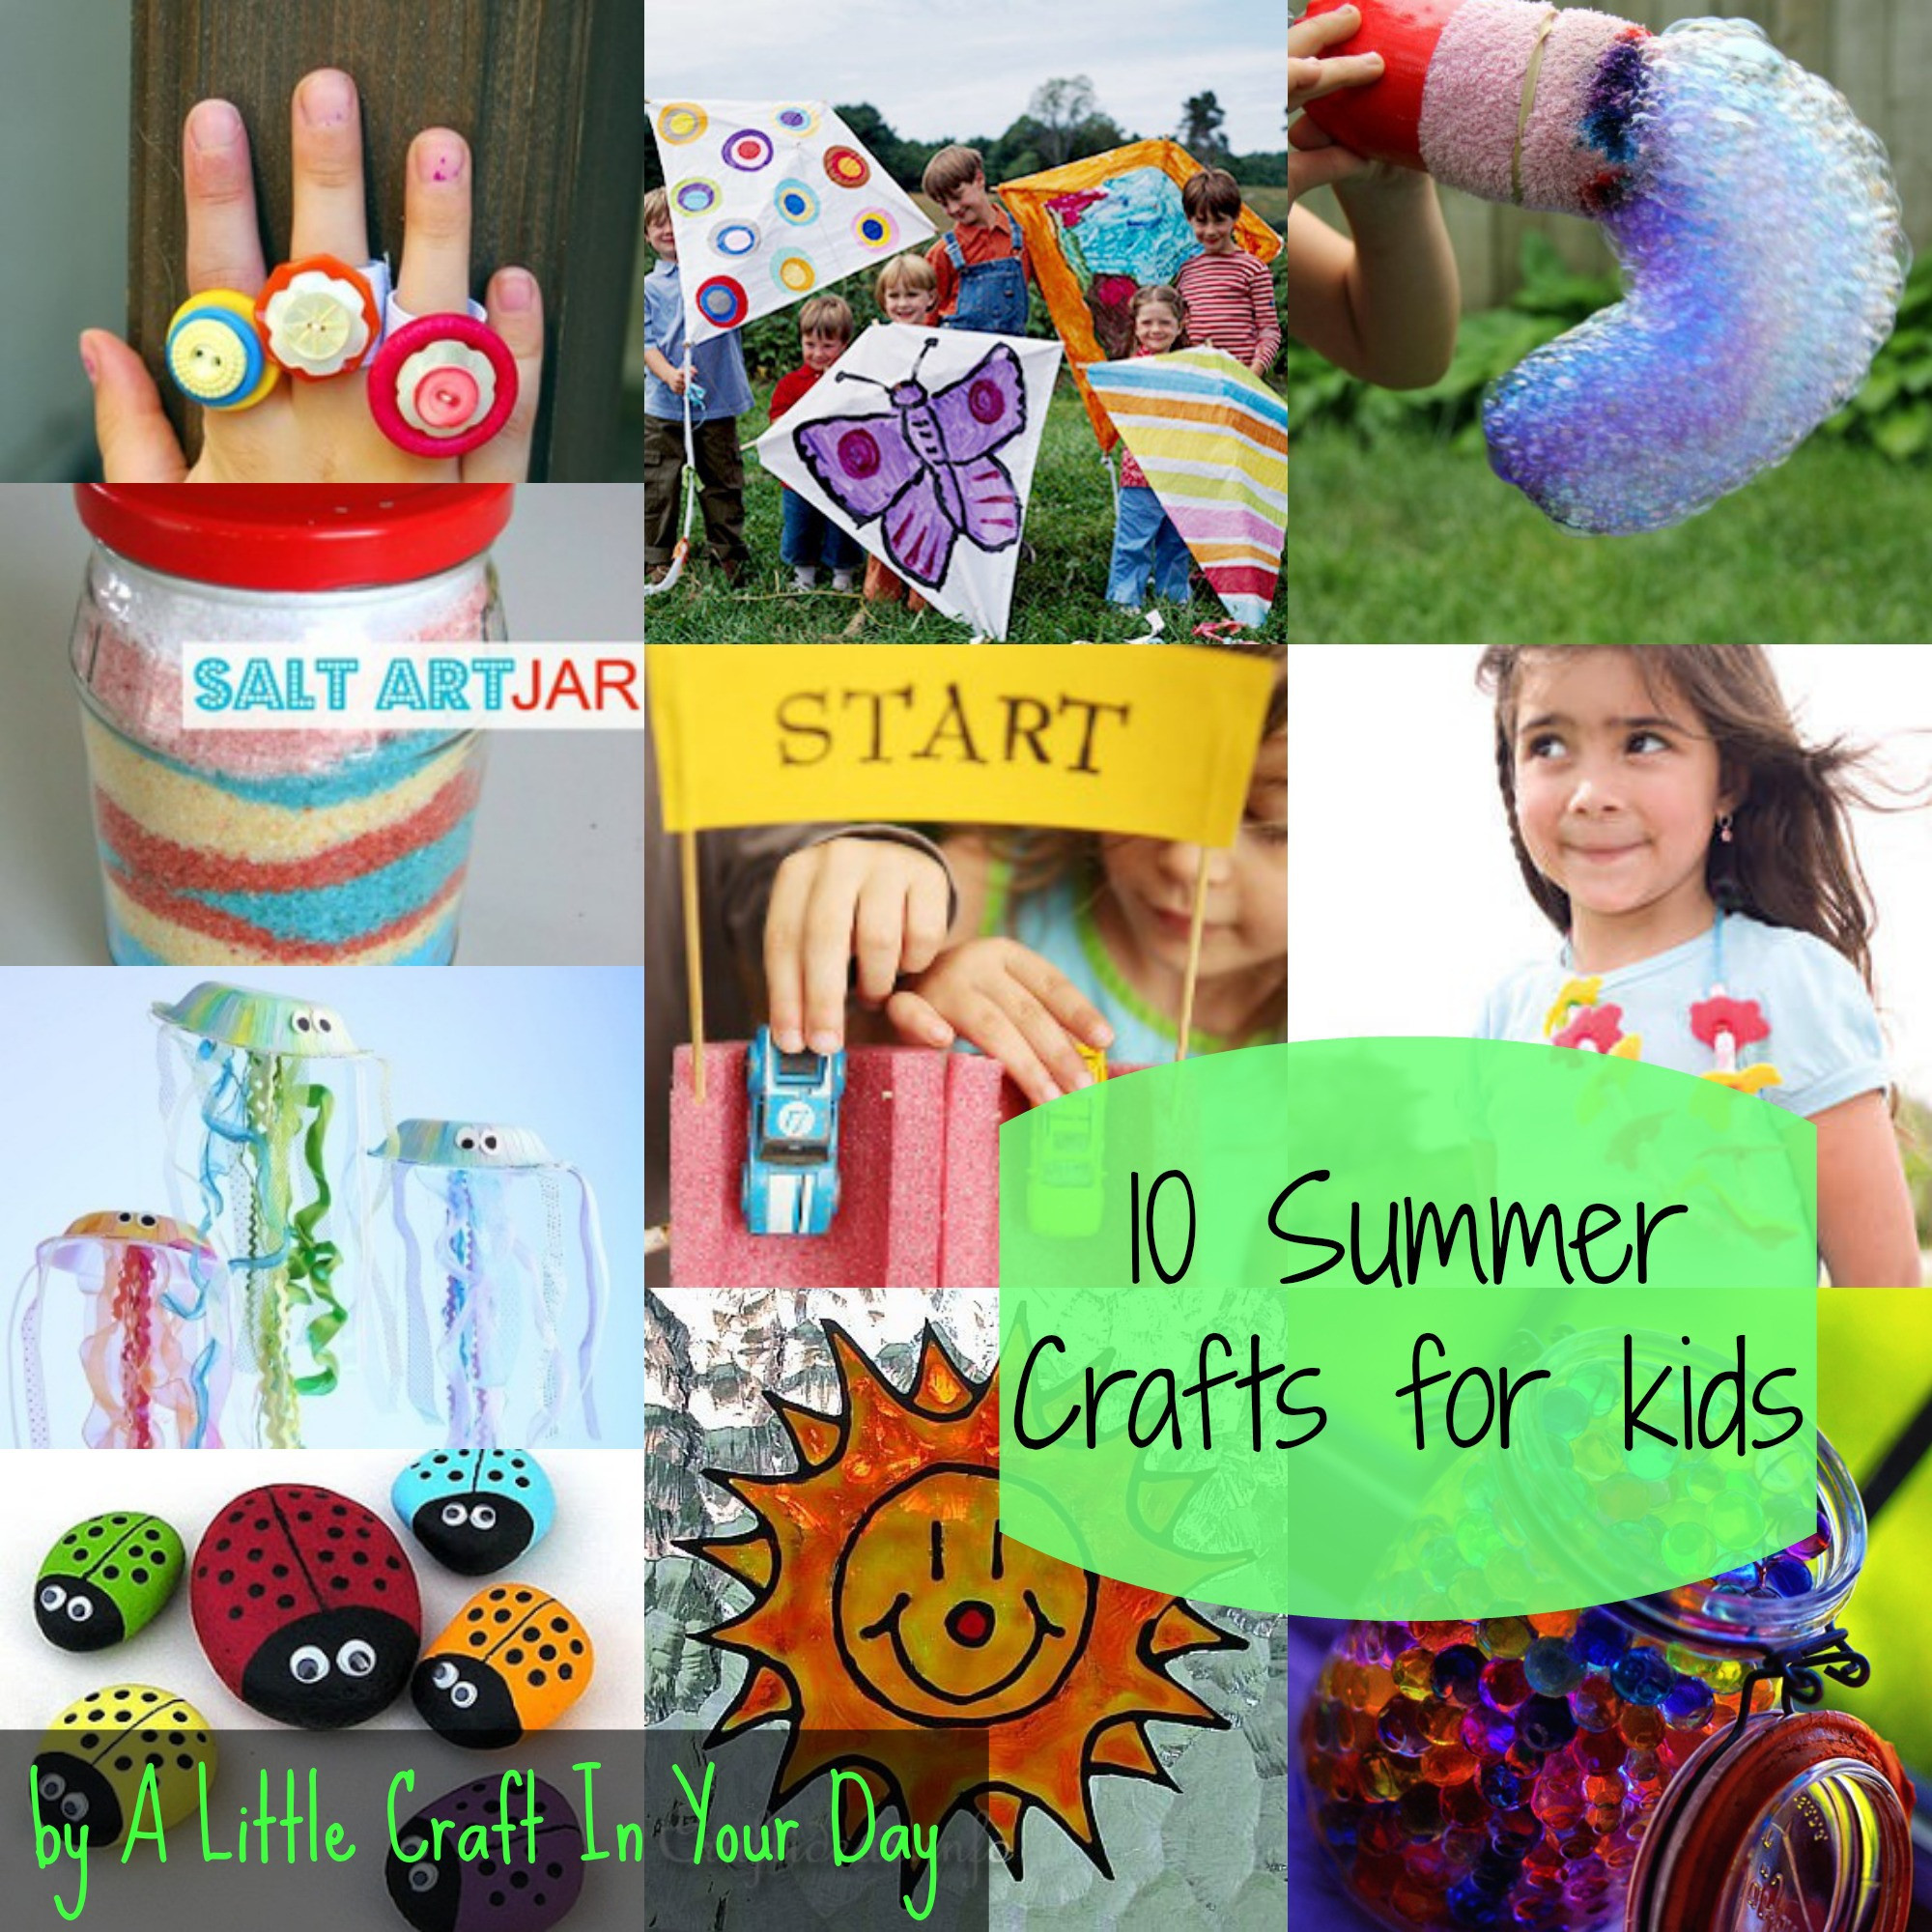 Best ideas about Projects For Little Kids . Save or Pin Kid Friendly Summer Crafts A Little Craft In Your Day Now.